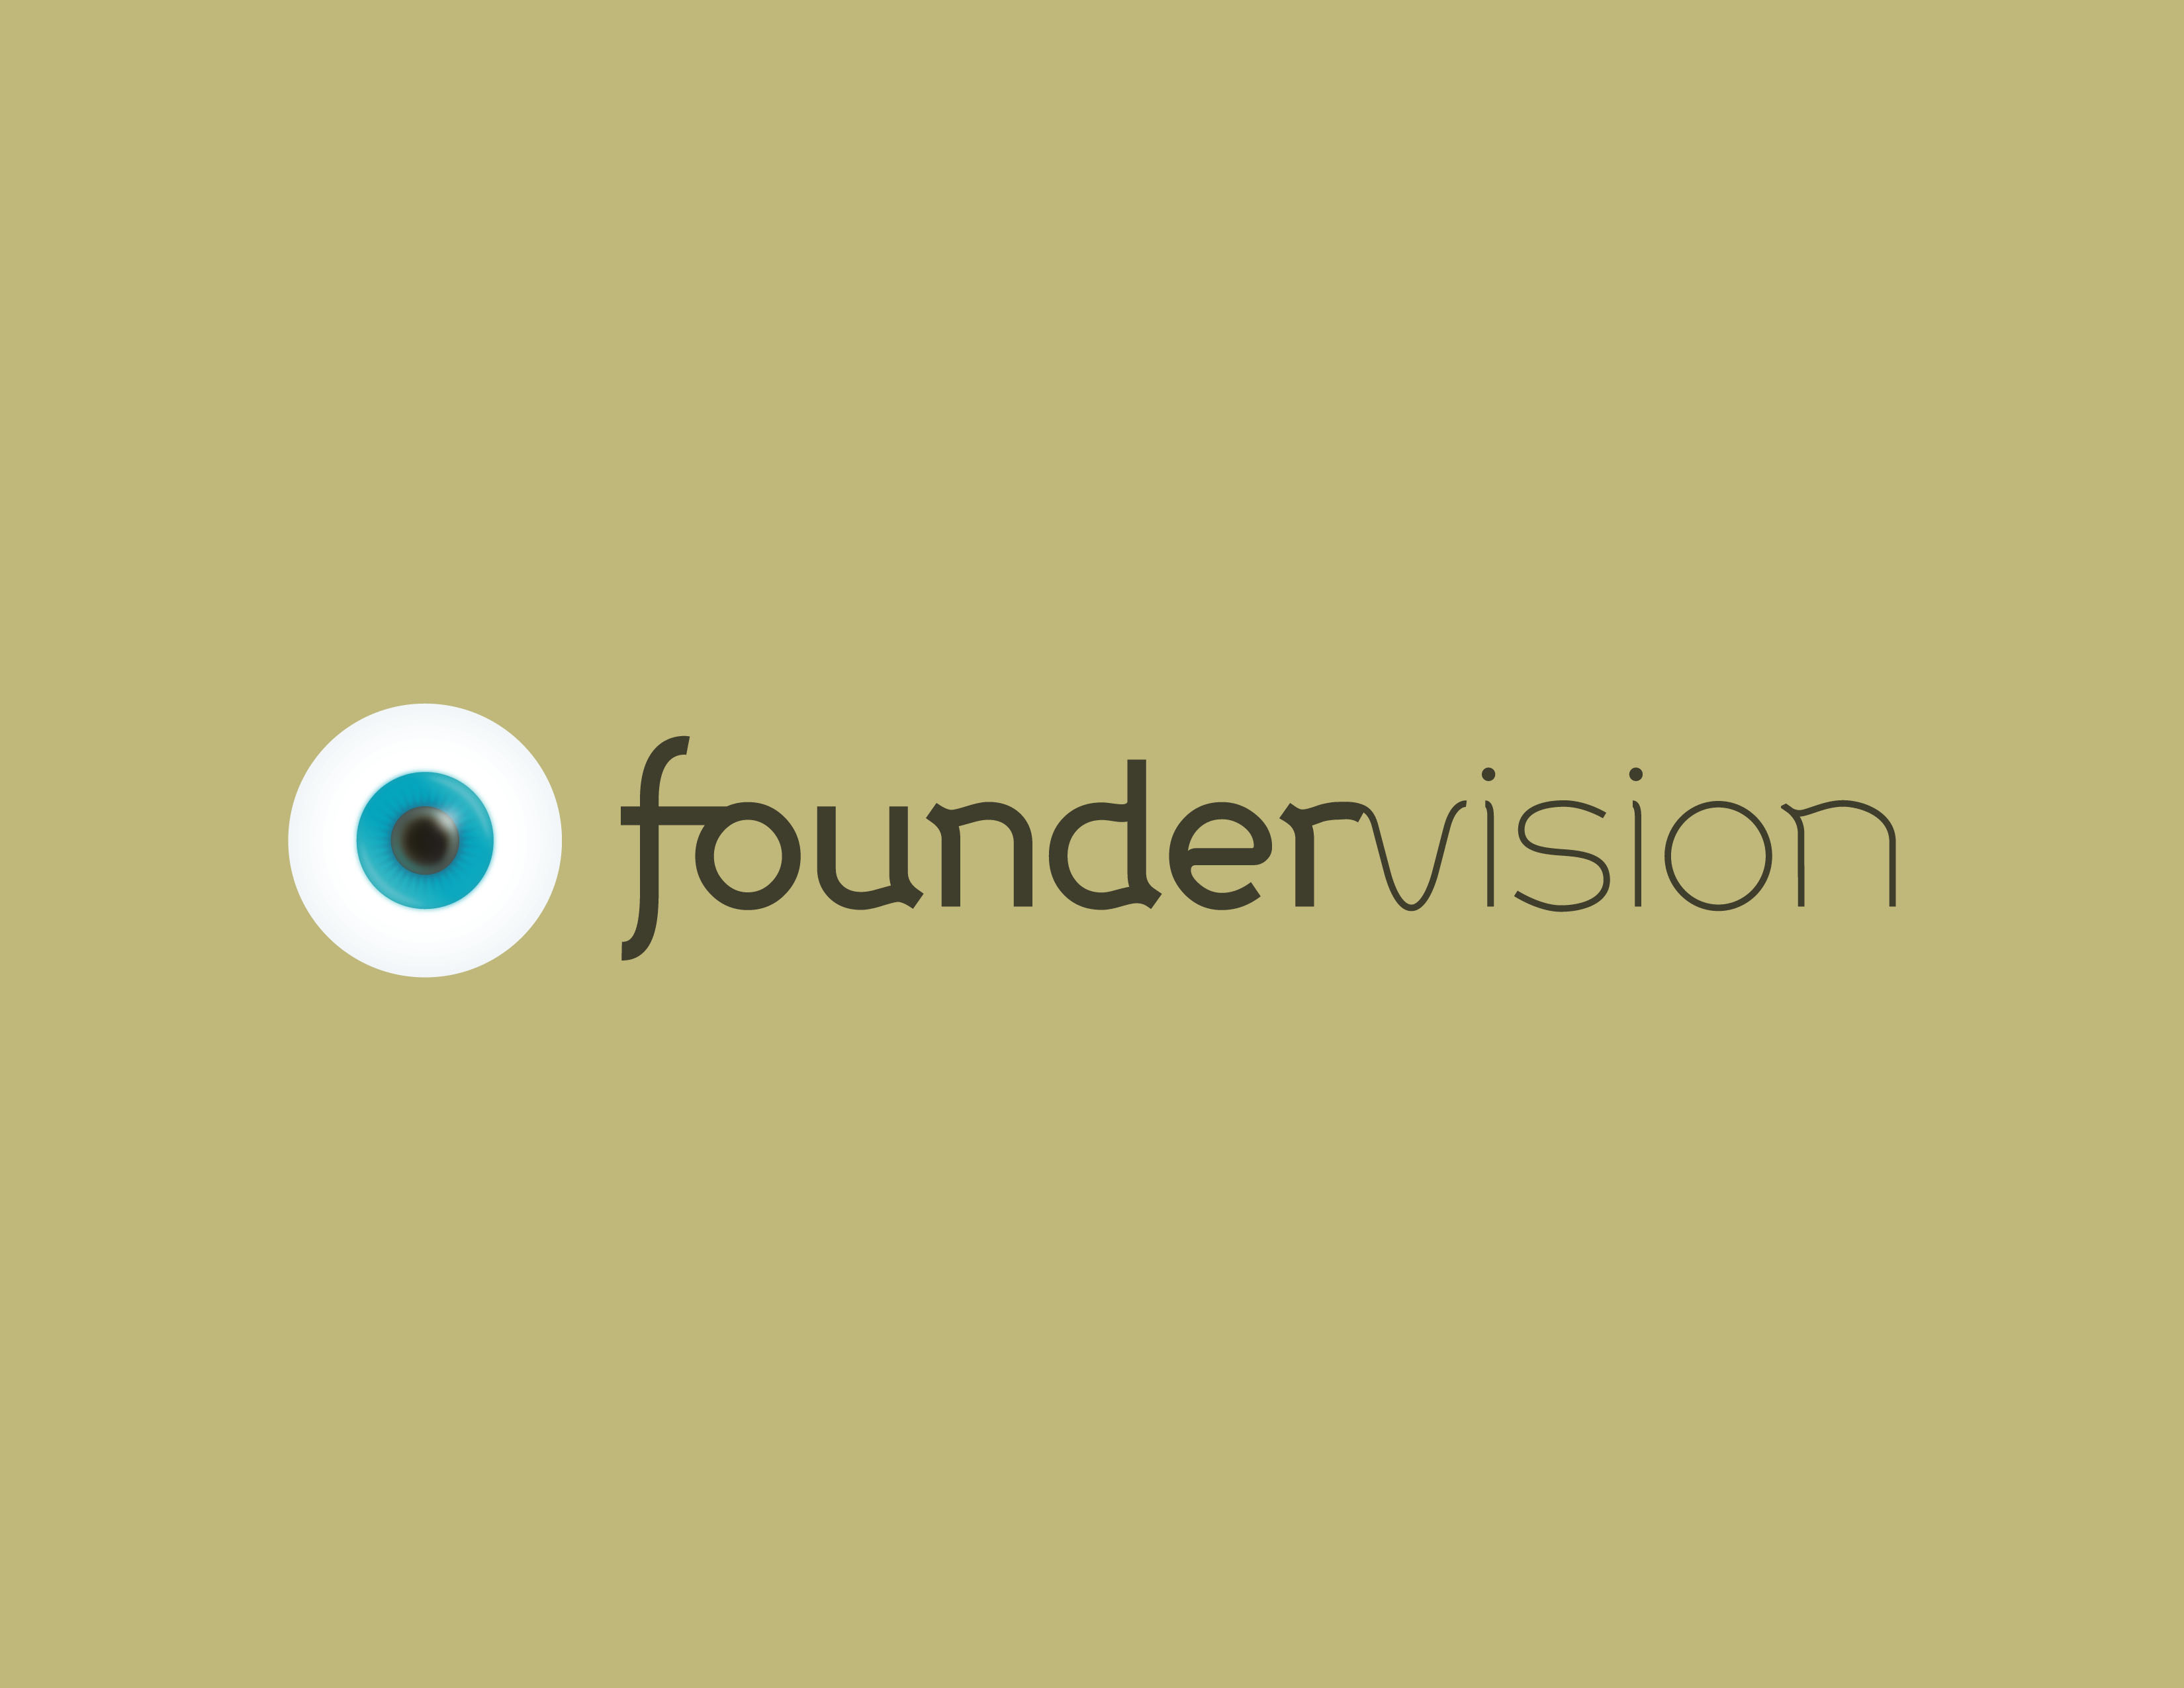 Foundervision